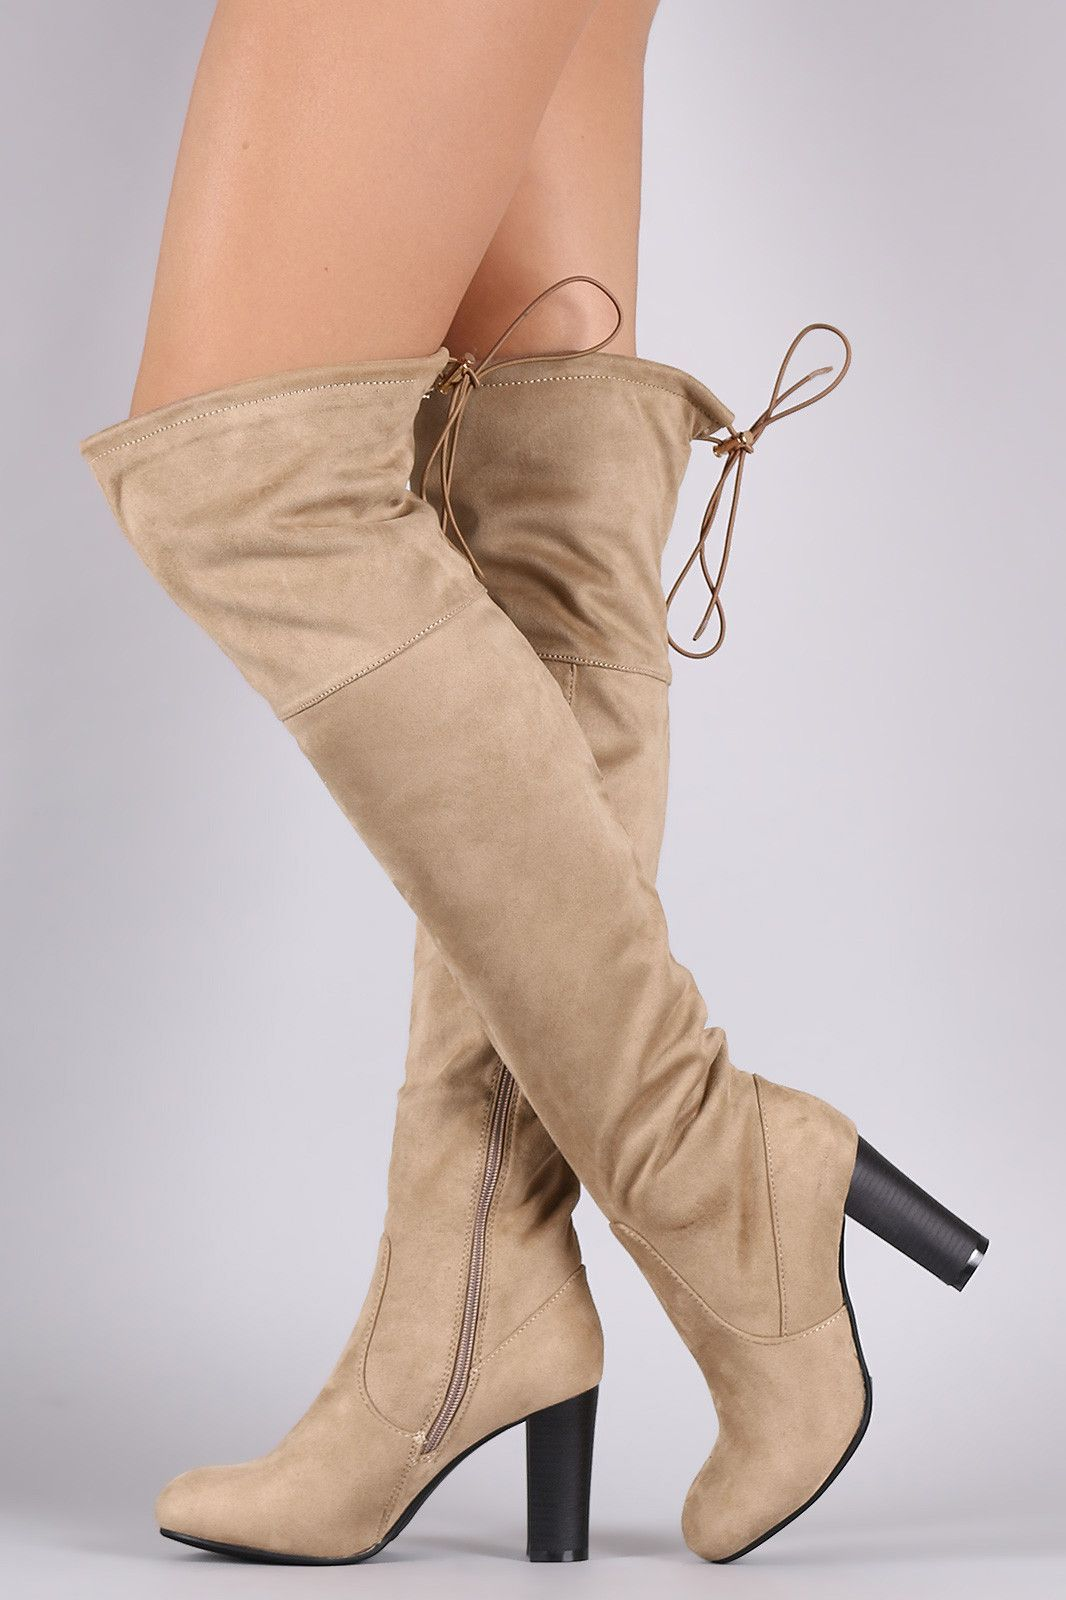 6a35d22fc11b Suede Drawstring-Tie Chunky Heeled Boots. These over the knee boots ...